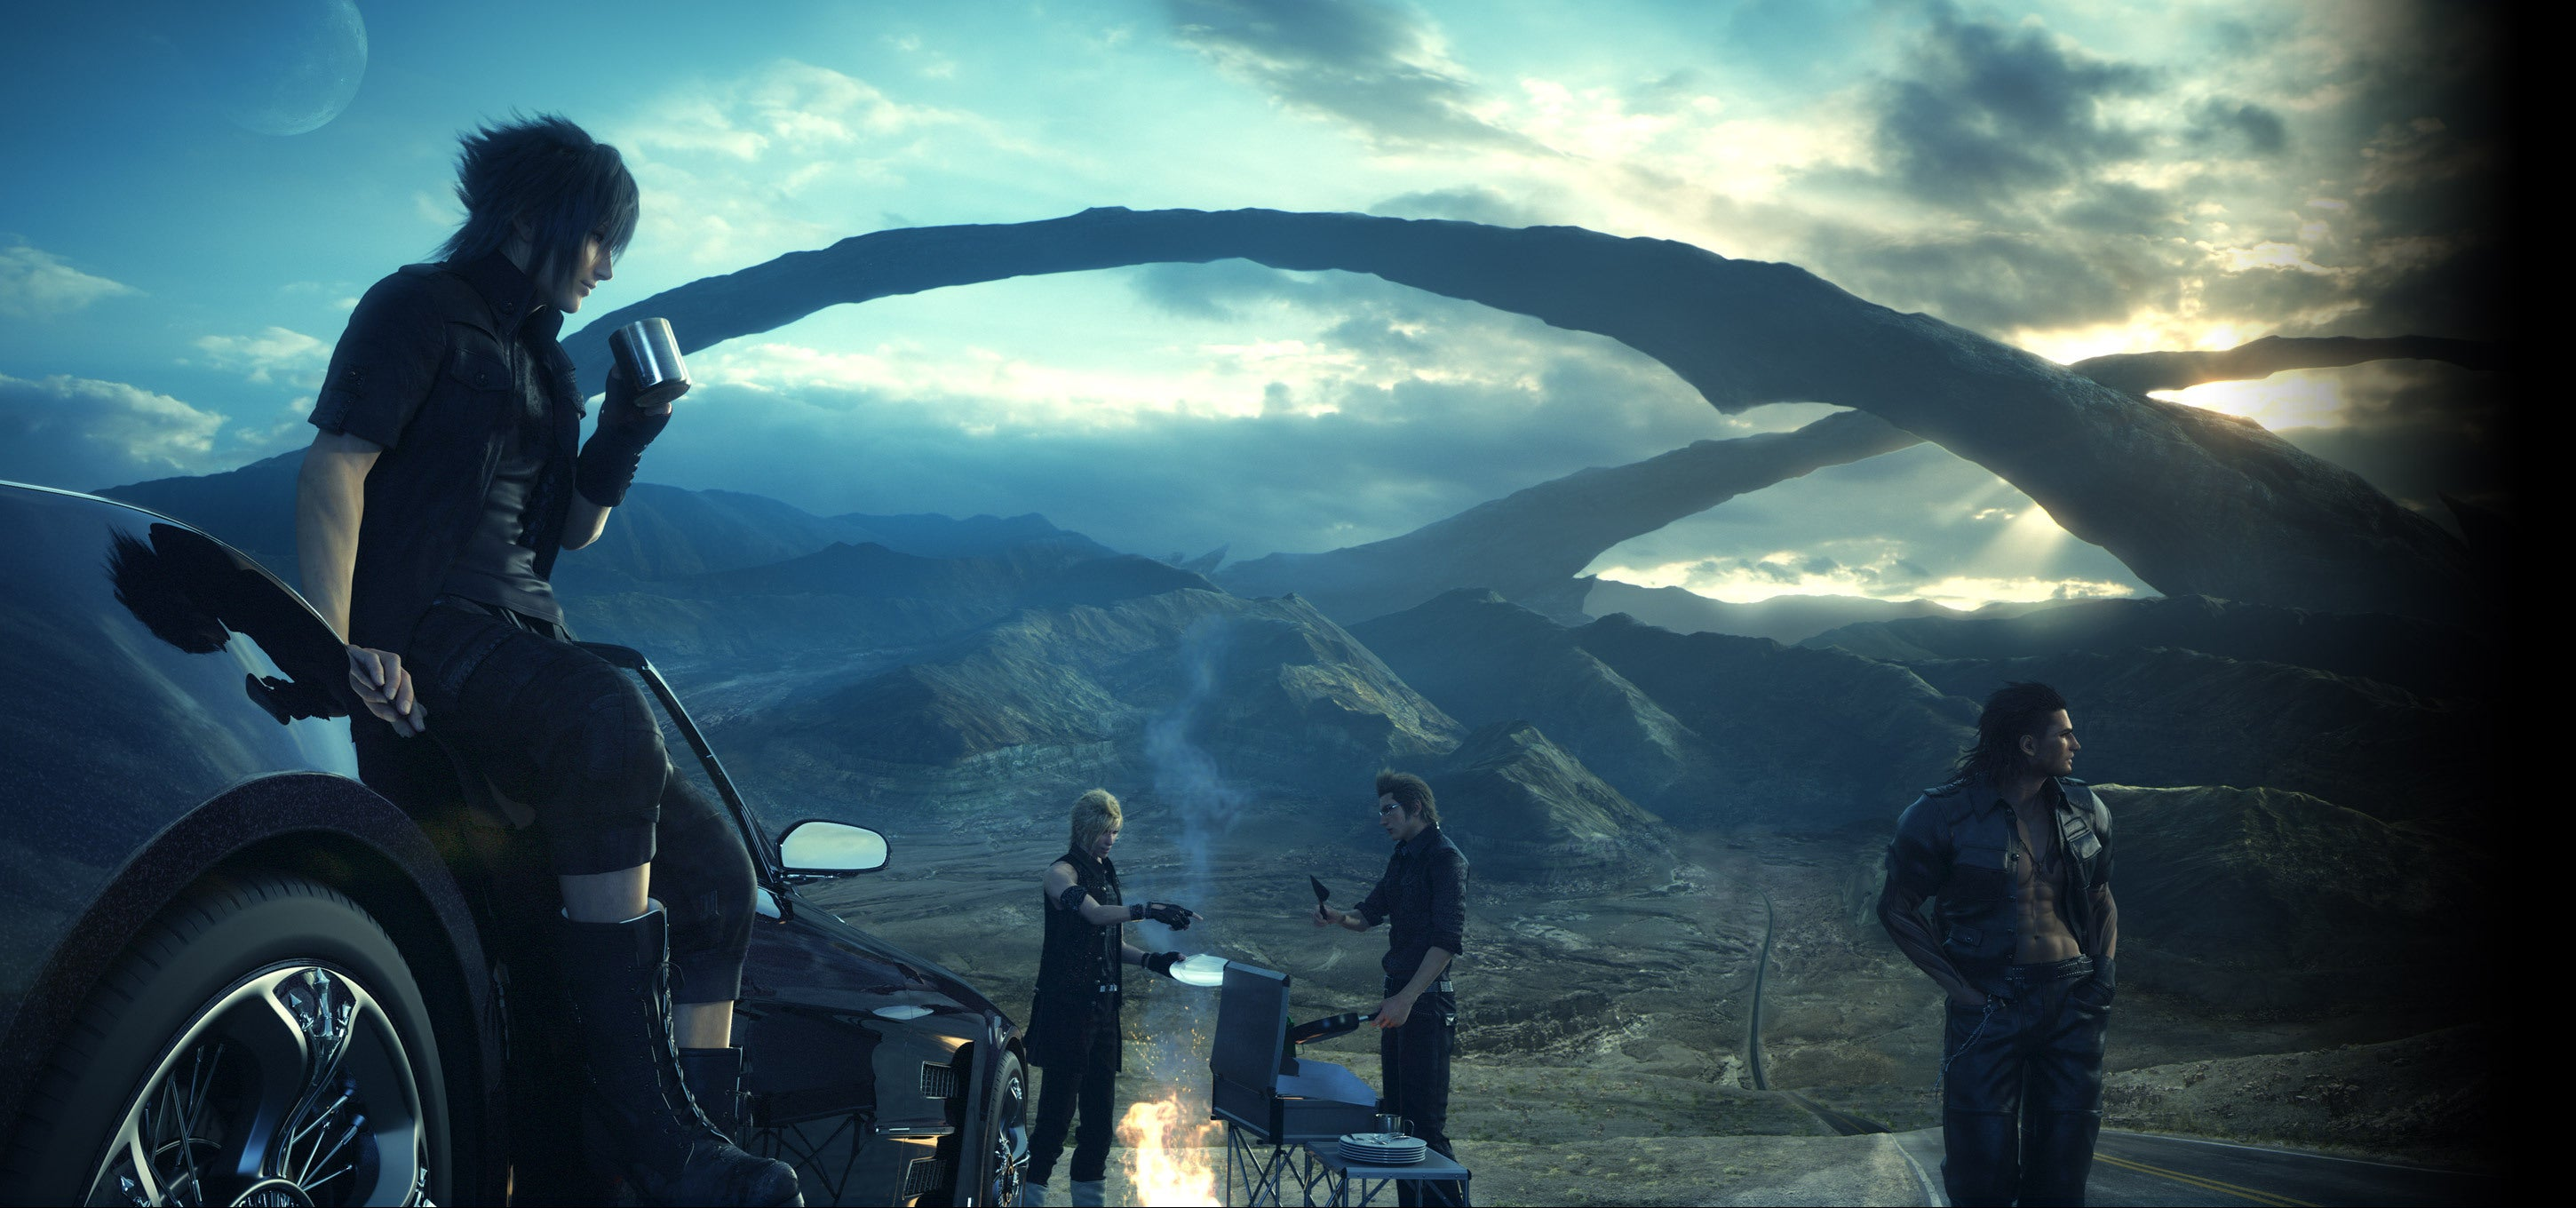 The Internet Reacts To Final Fantasy XV's New Trailer